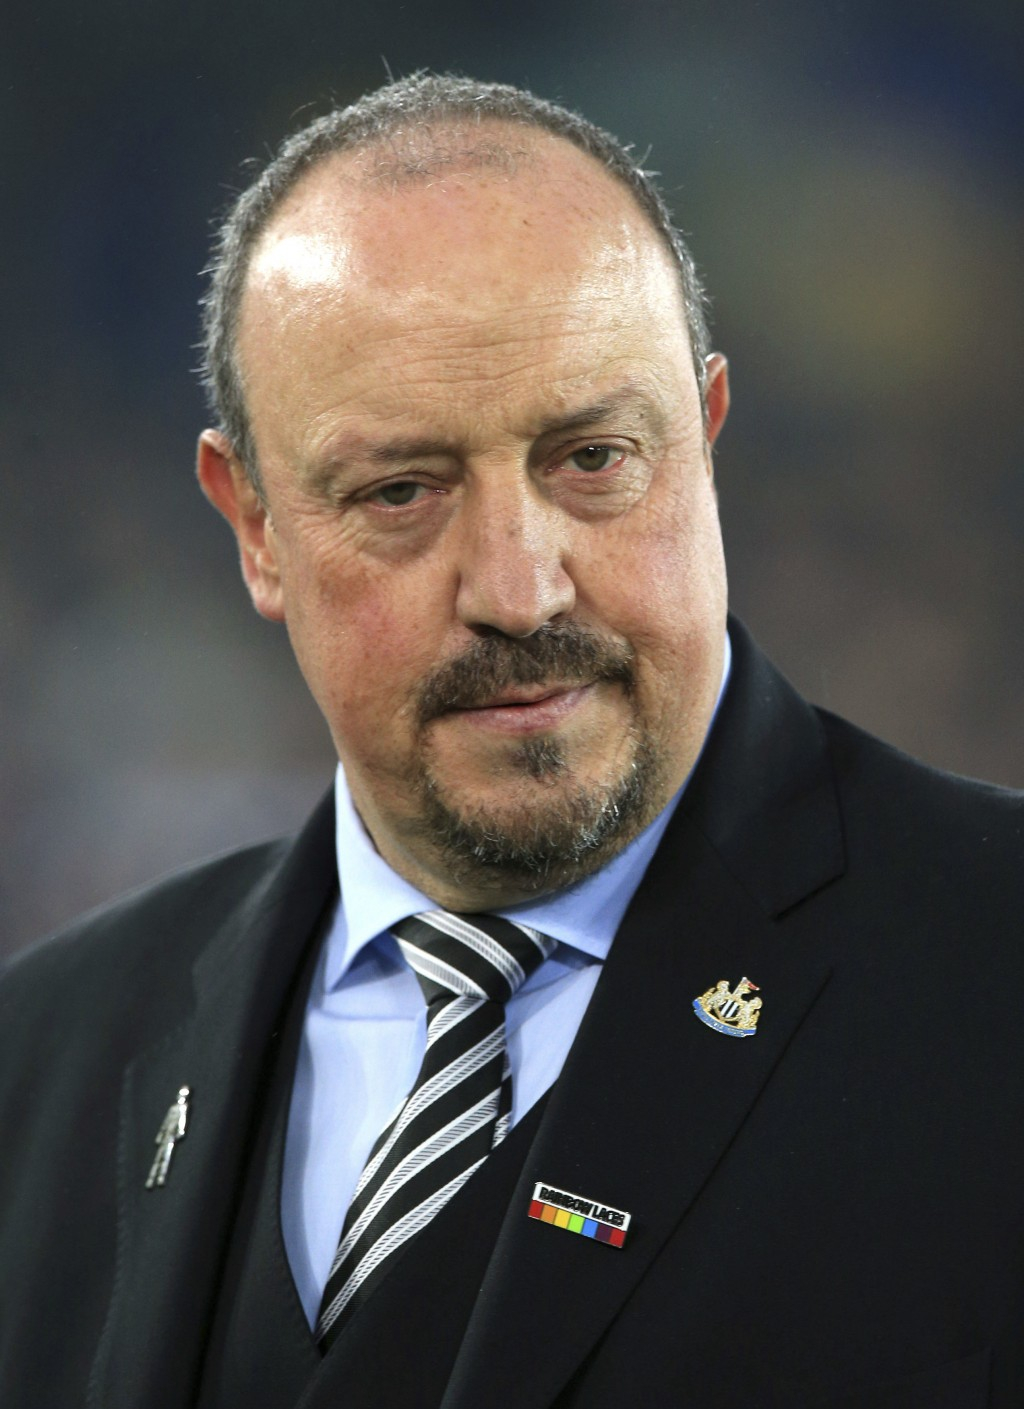 Newcastle United manager Rafael Benitez looks on before the game against Everton during their English Premier League soccer match at Goodison Park in